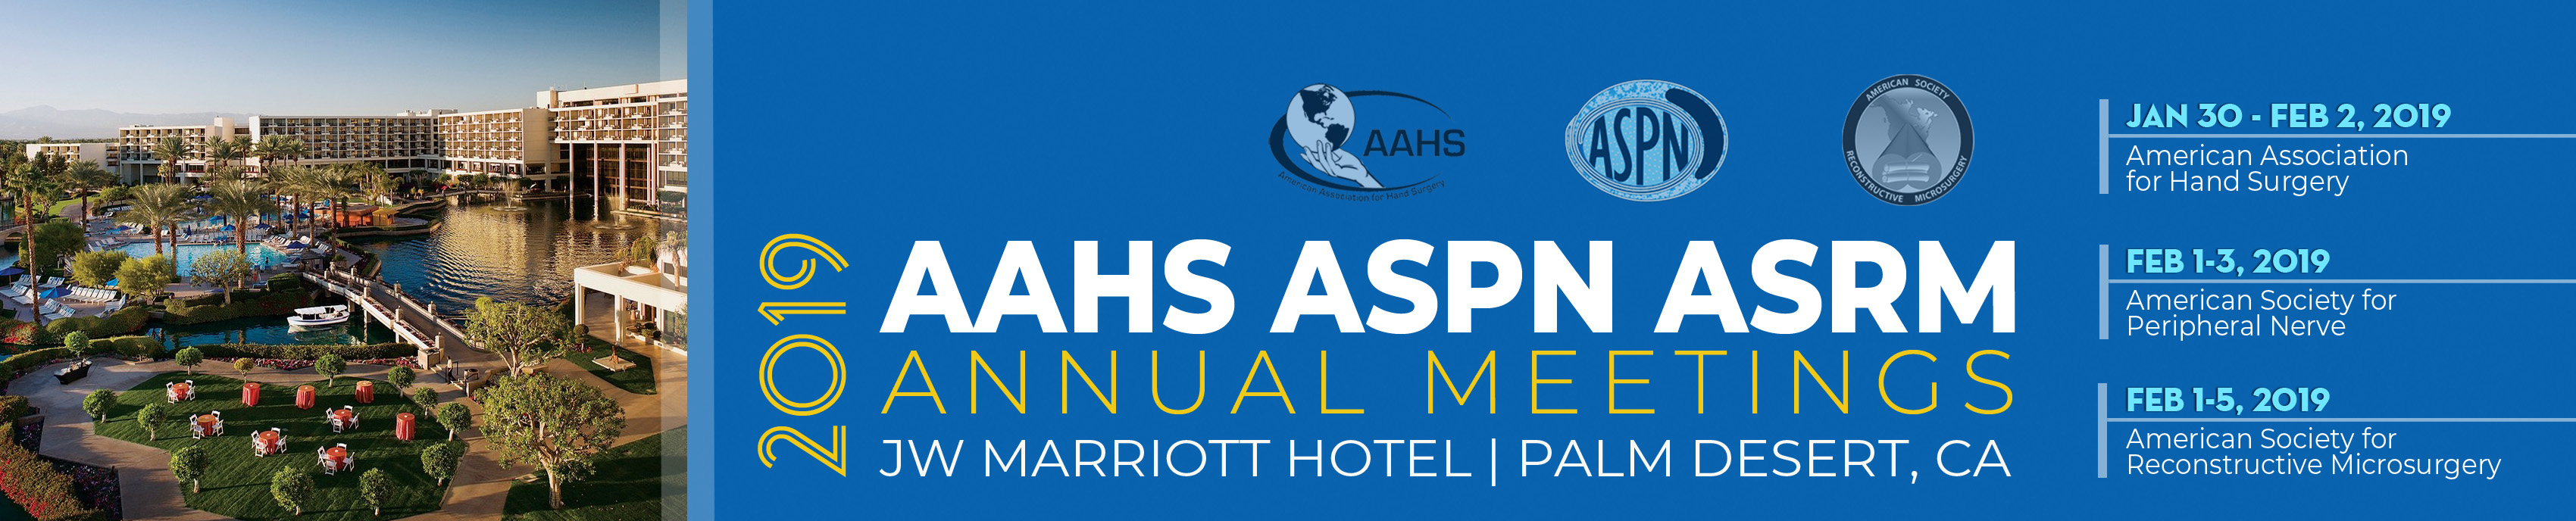 AAHS/ASPN/ASRM Annual Meetings